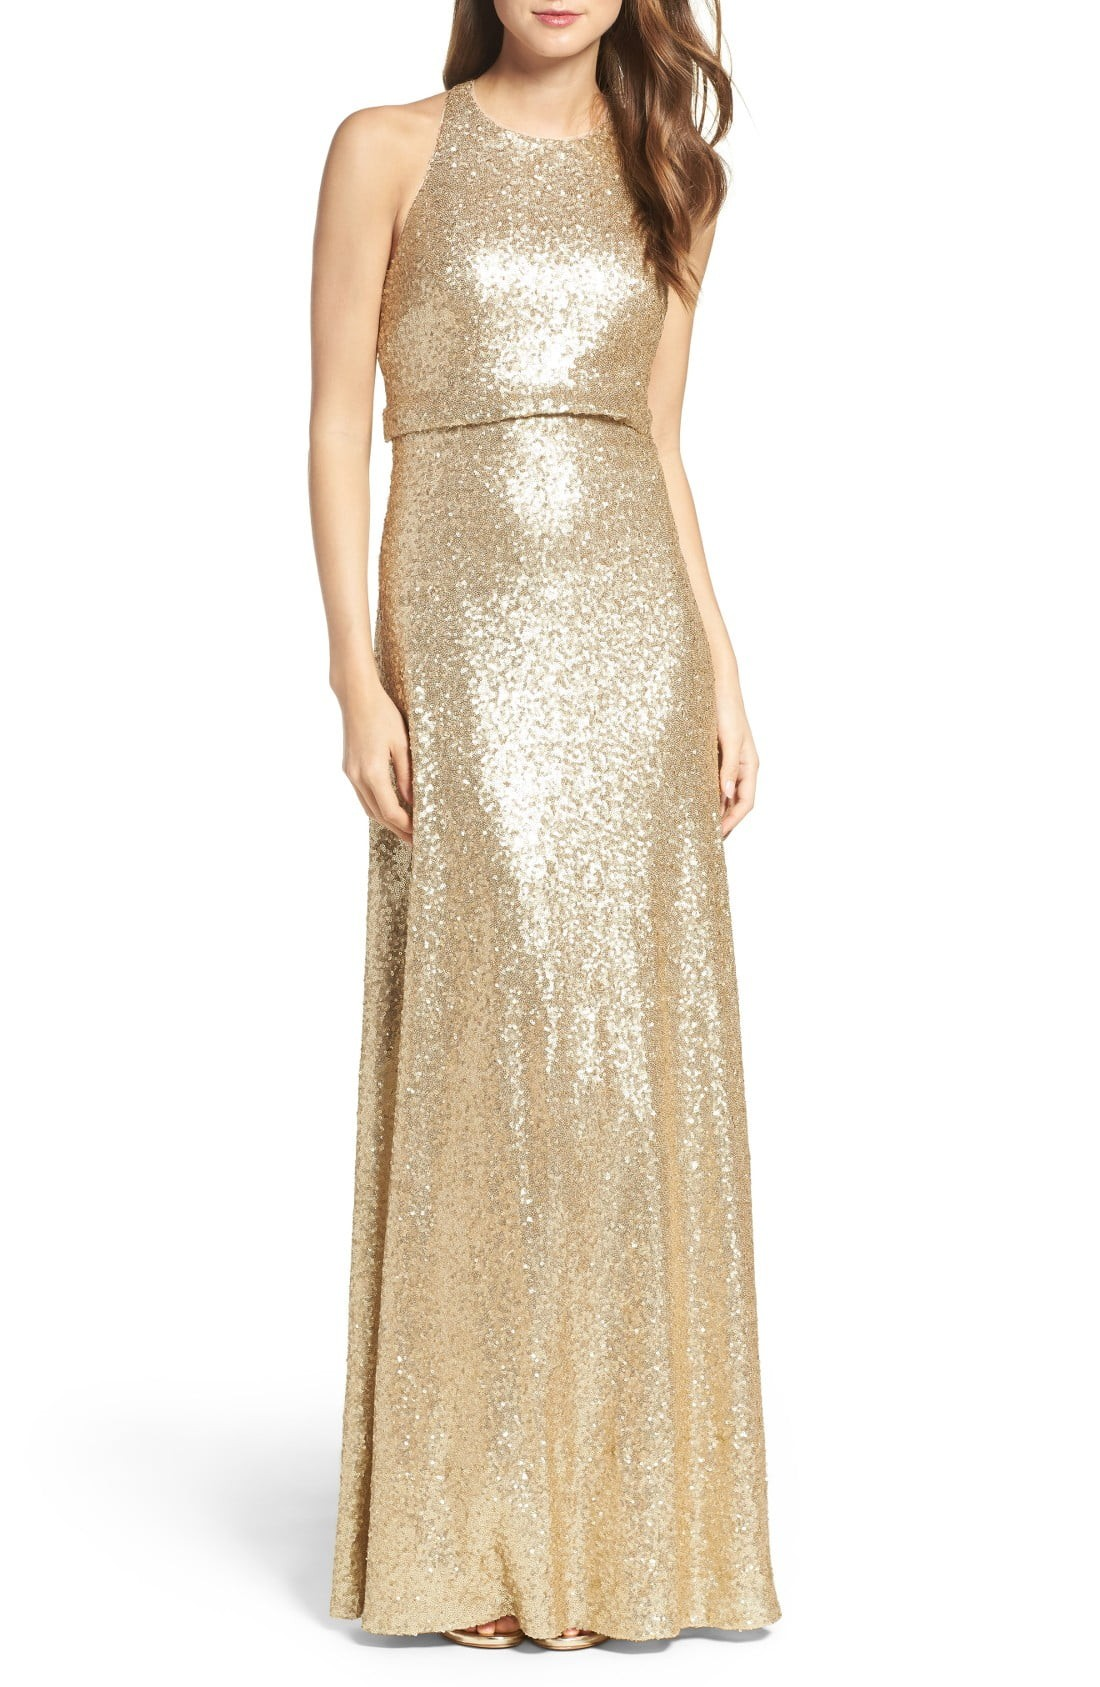 34 glamorous and gorgeous sequin bridesmaids dresses junebug weddings shop gold sequin bridesmaids dresses ombrellifo Choice Image